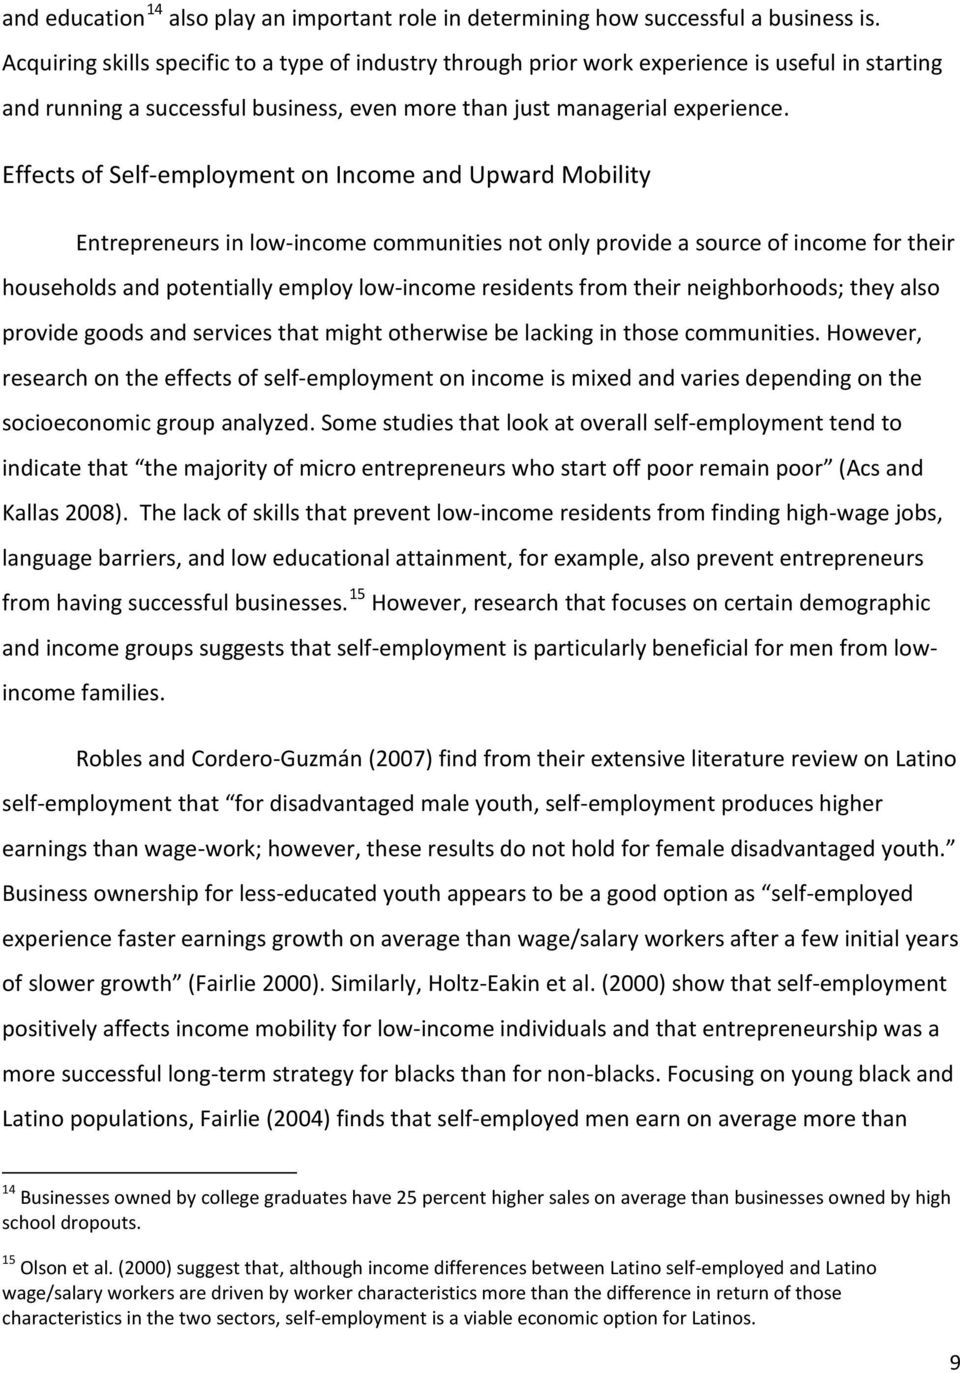 Effects of Self-employment on Income and Upward Mobility Entrepreneurs in low-income communities not only provide a source of income for their households and potentially employ low-income residents